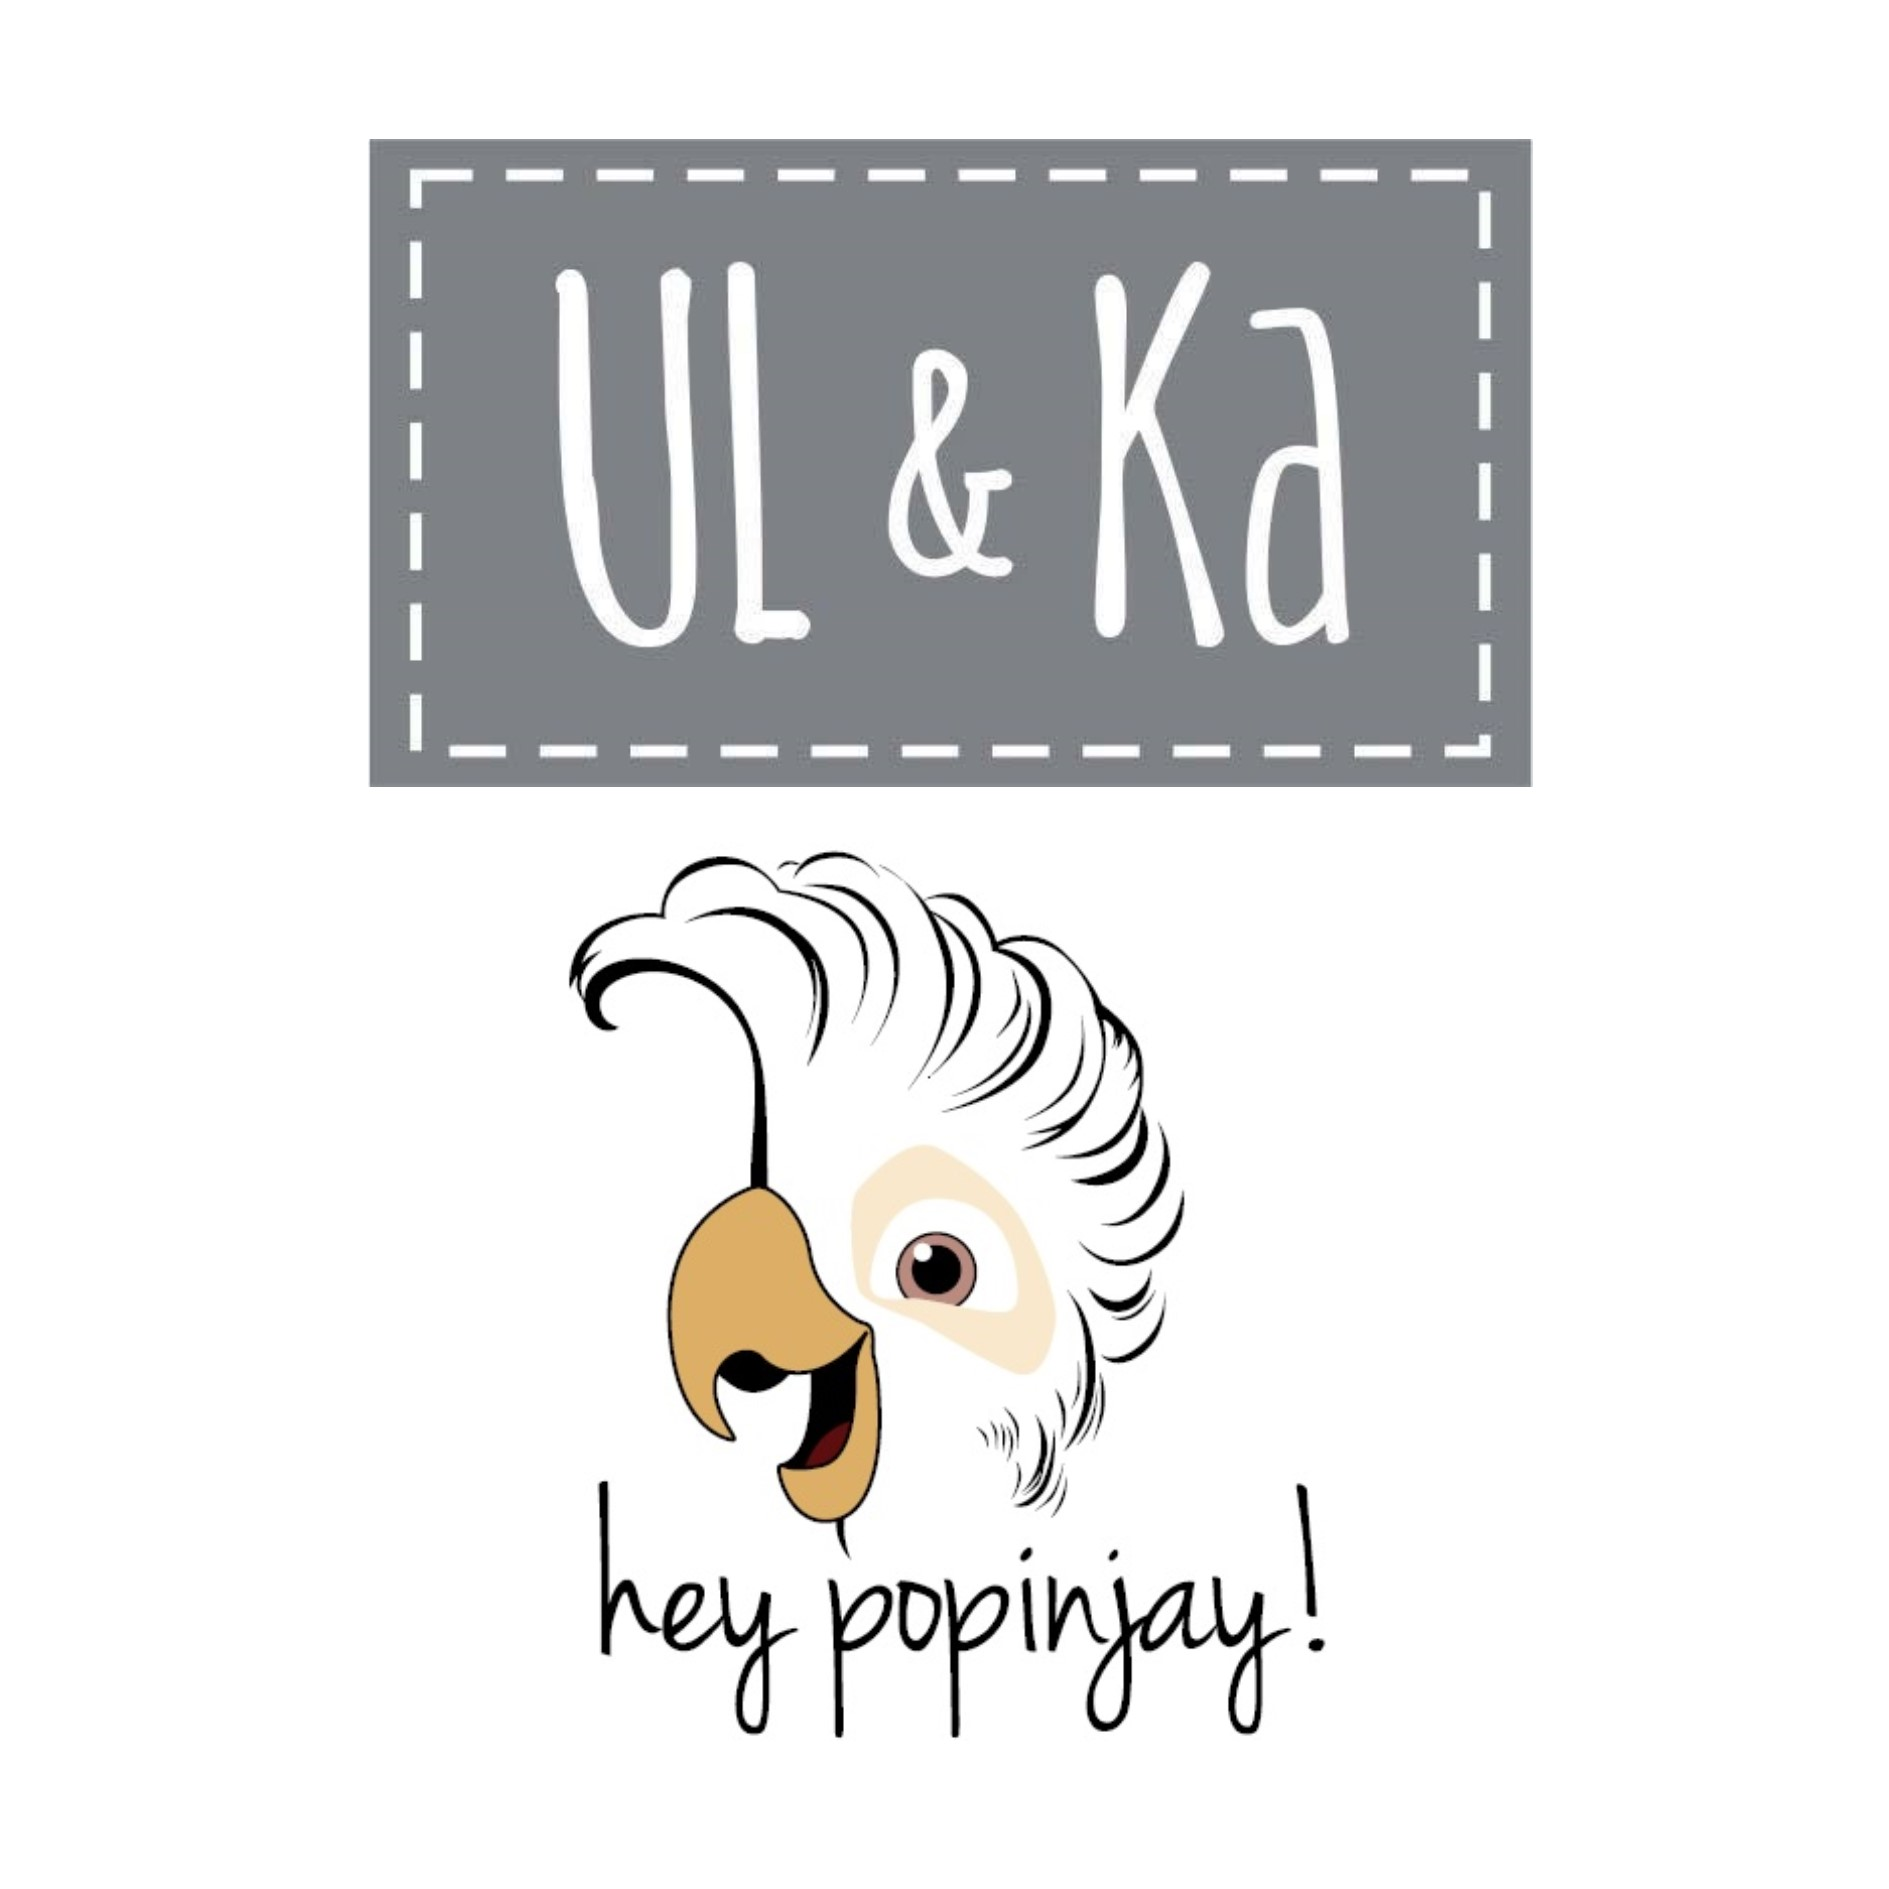 Ulka for Hey Popinjay!